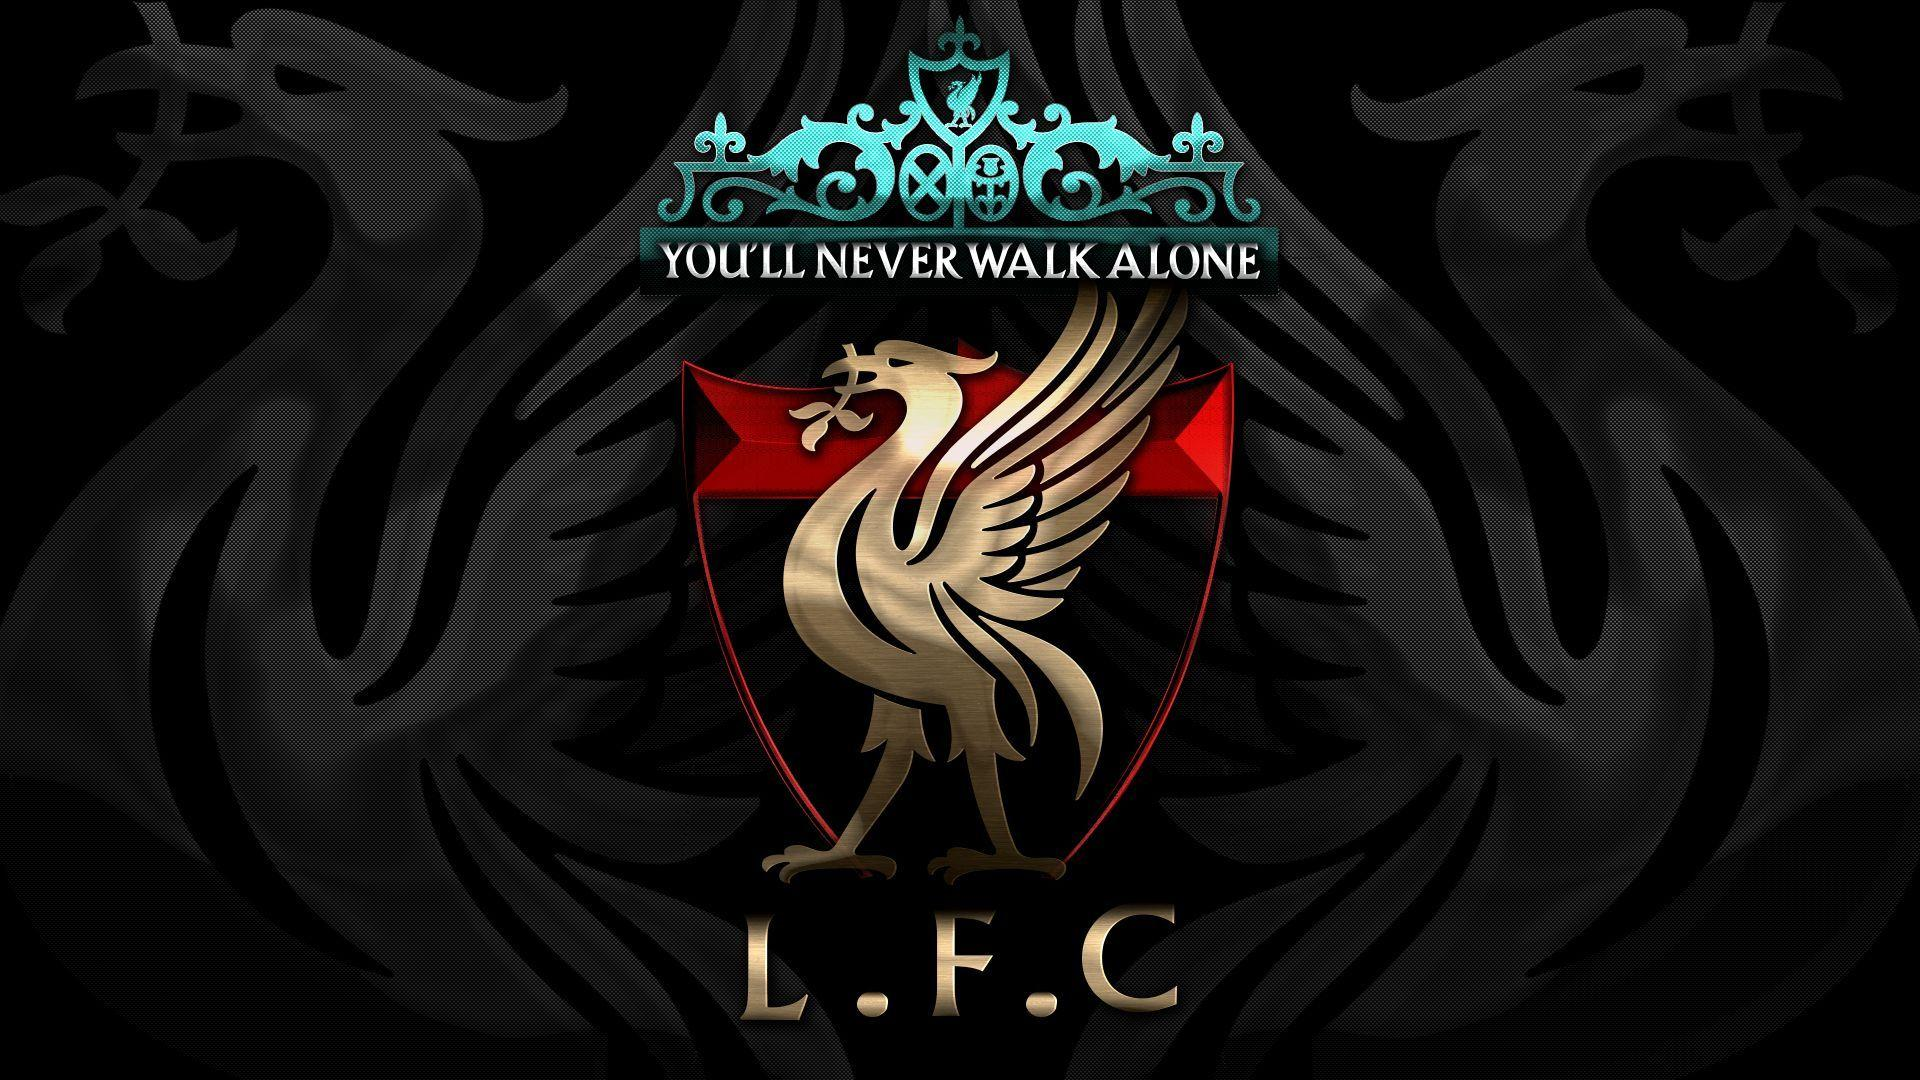 Alone Hd Wallpapers 1080p Wallpapers Logo Liverpool 2017 Wallpaper Cave